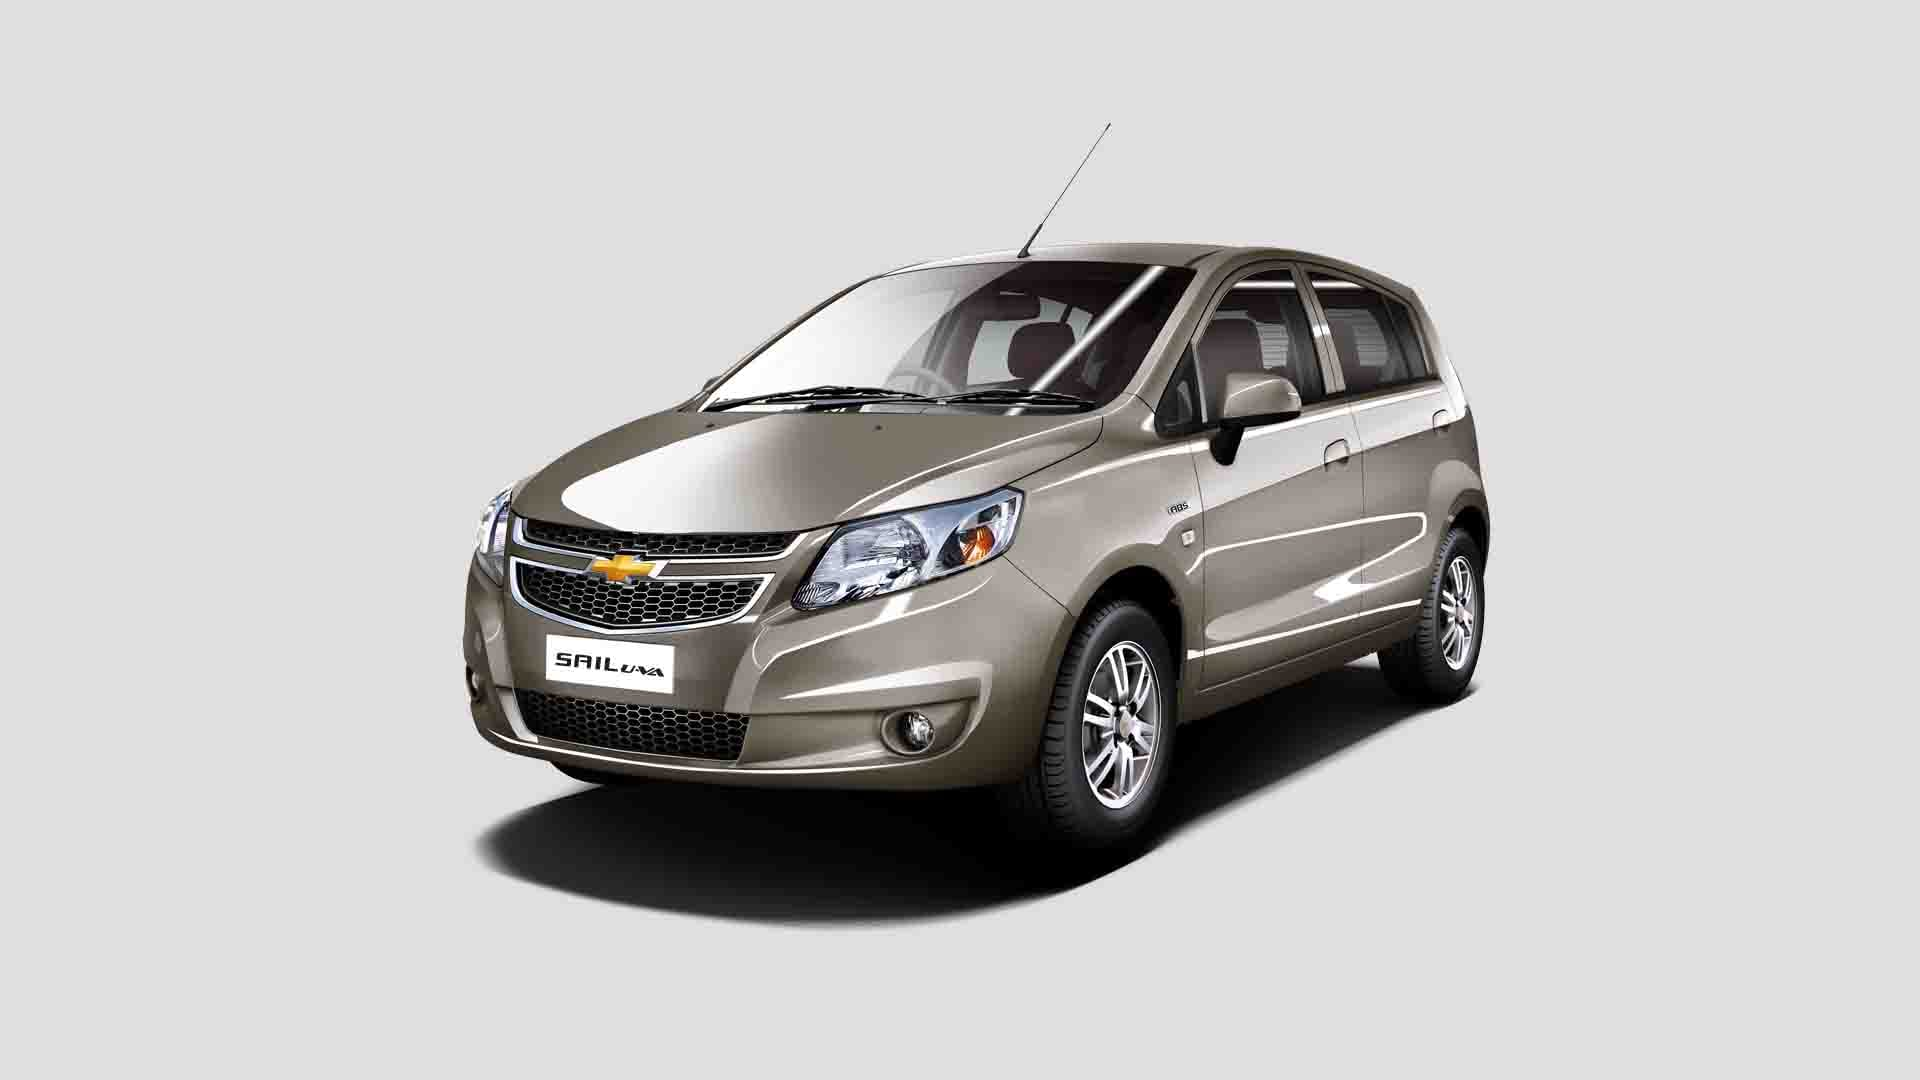 Chevrolet Sail UVA India, Price, Review, Images ...